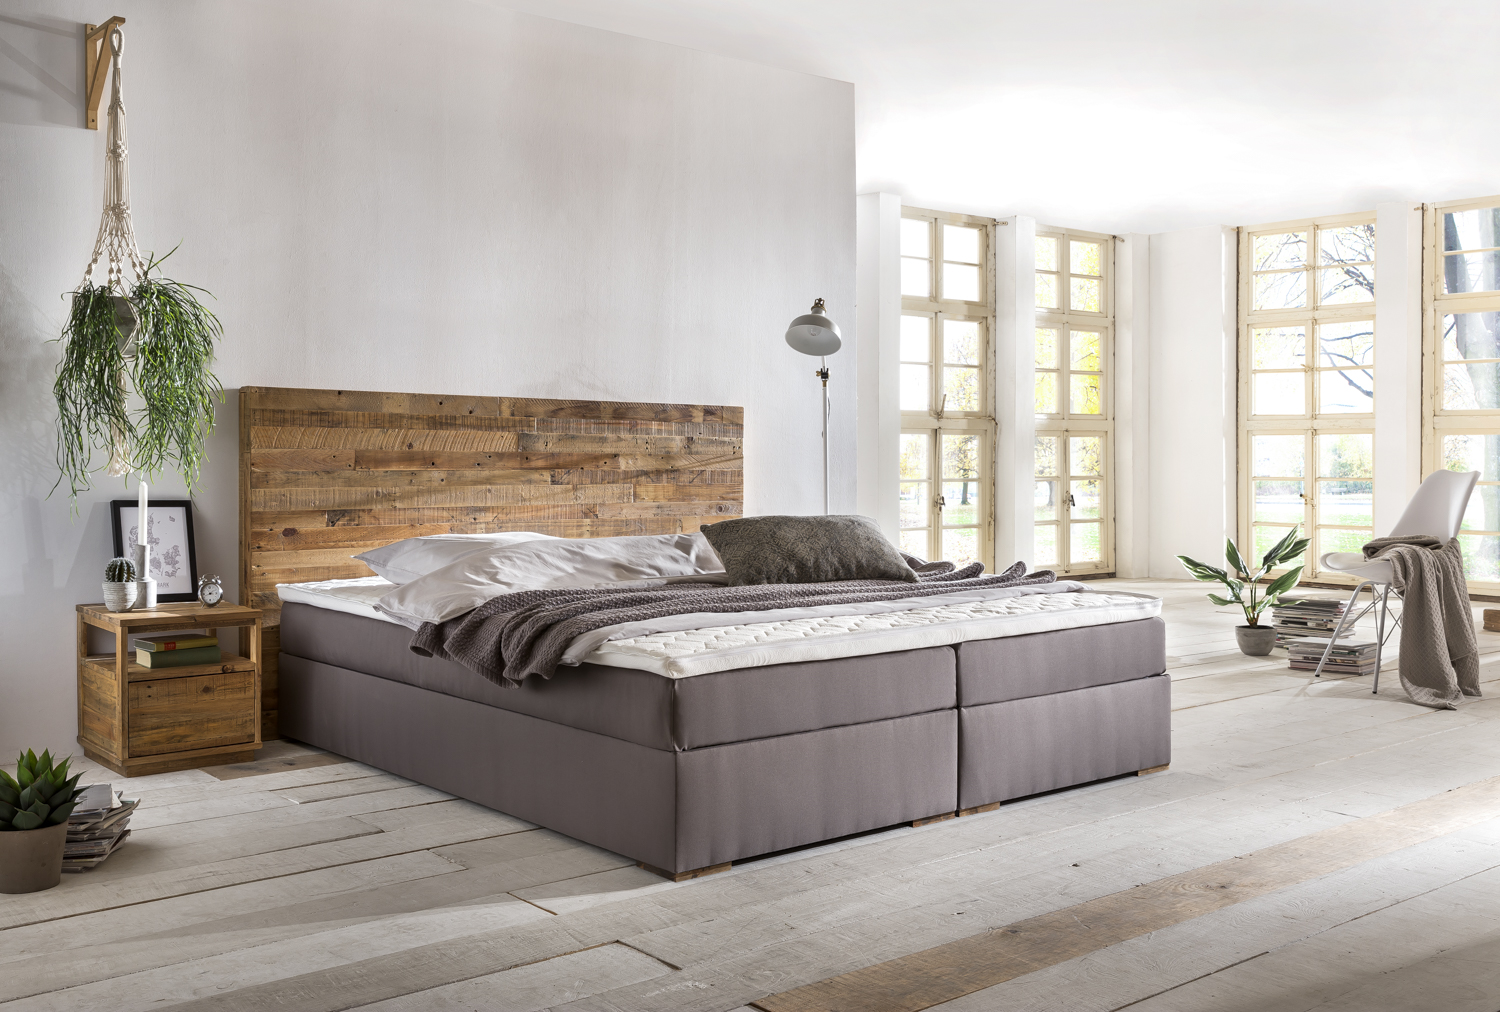 boxspringbett hastings 180x200 grau kopfteil echt holz. Black Bedroom Furniture Sets. Home Design Ideas